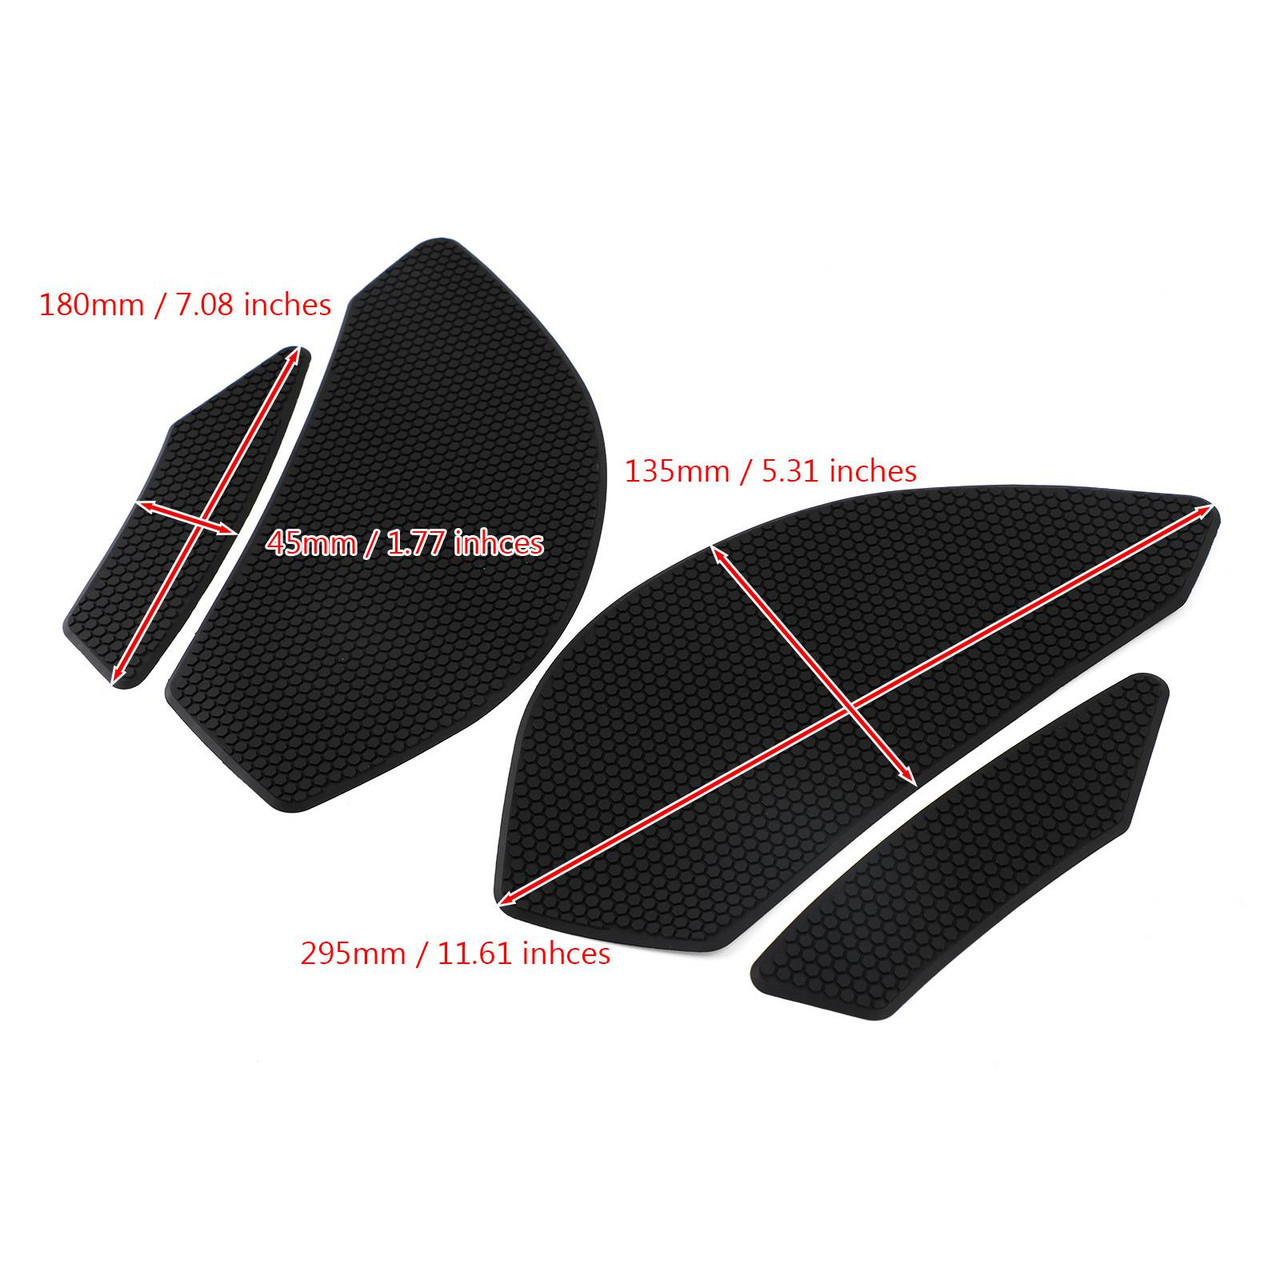 4x Side Tank Traction Grips Pads Fit for Kawasaki ZX6R Ninja ZX600 ZX636 09-19 Black